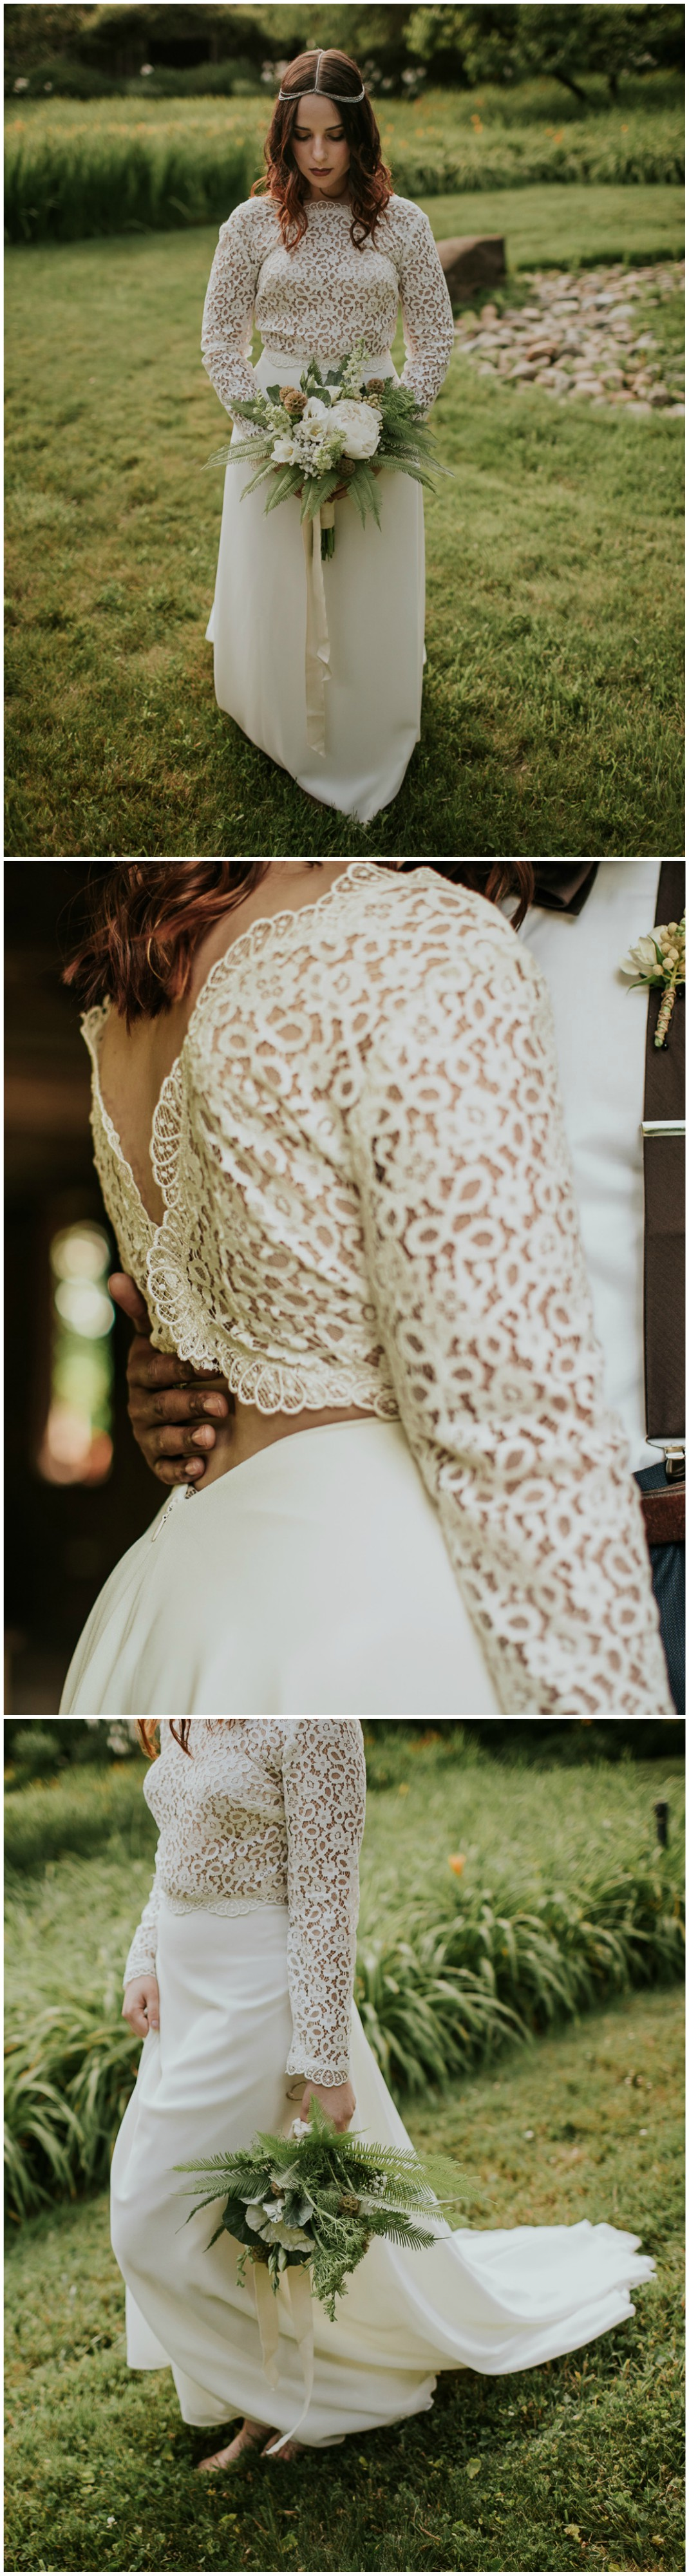 Wedding dress images  Natural Alfresco Styled Shoot  Philo CA  Vintage bridal Lace